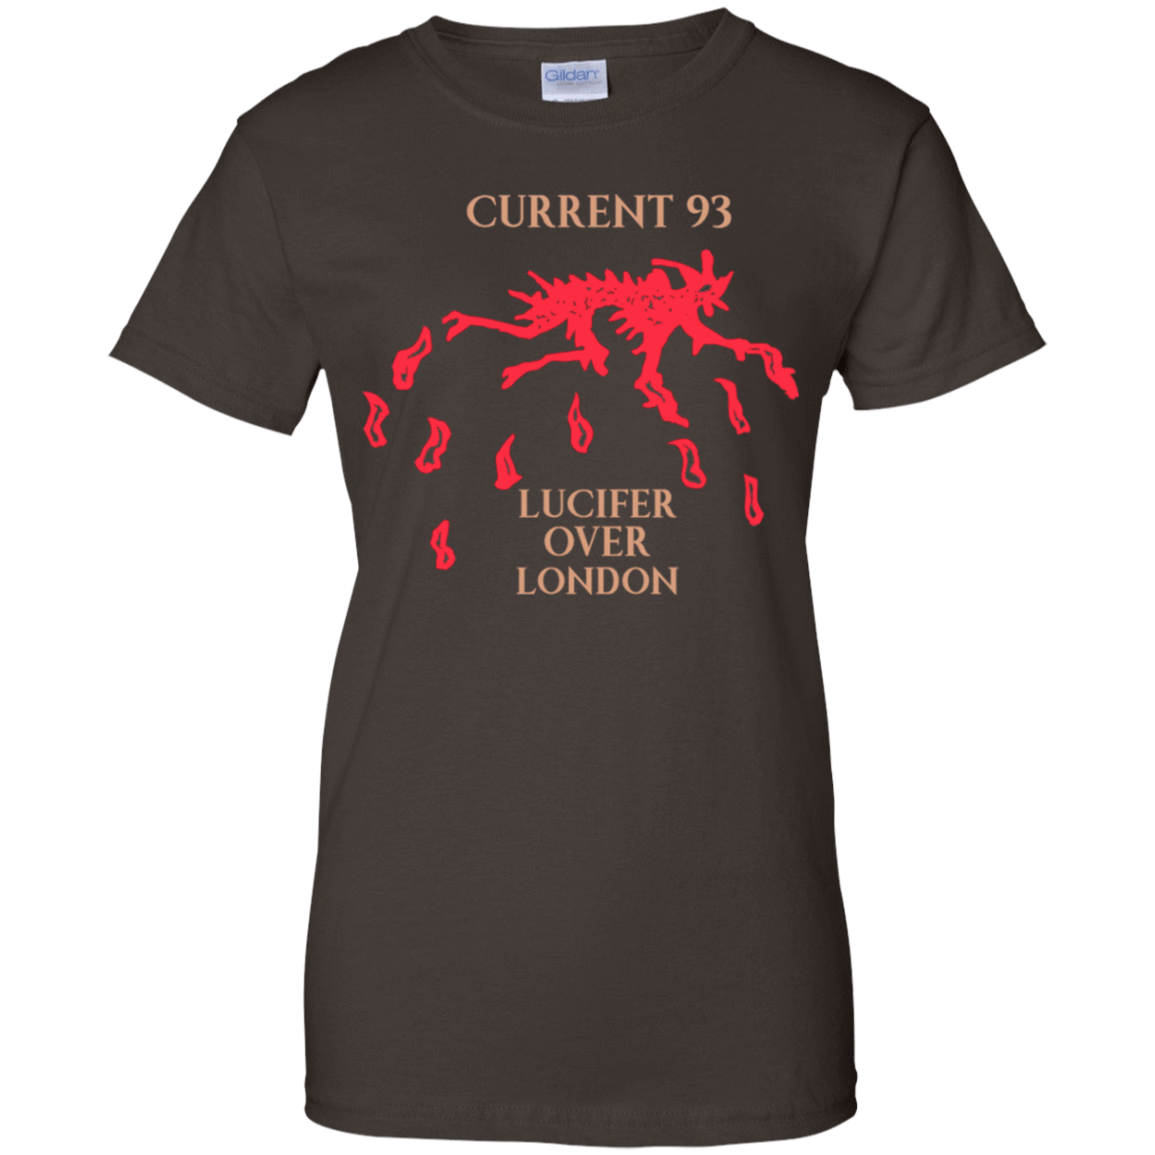 Current 93 Lucifer Over London 939-9251-73890762-44702 - Tee Ript